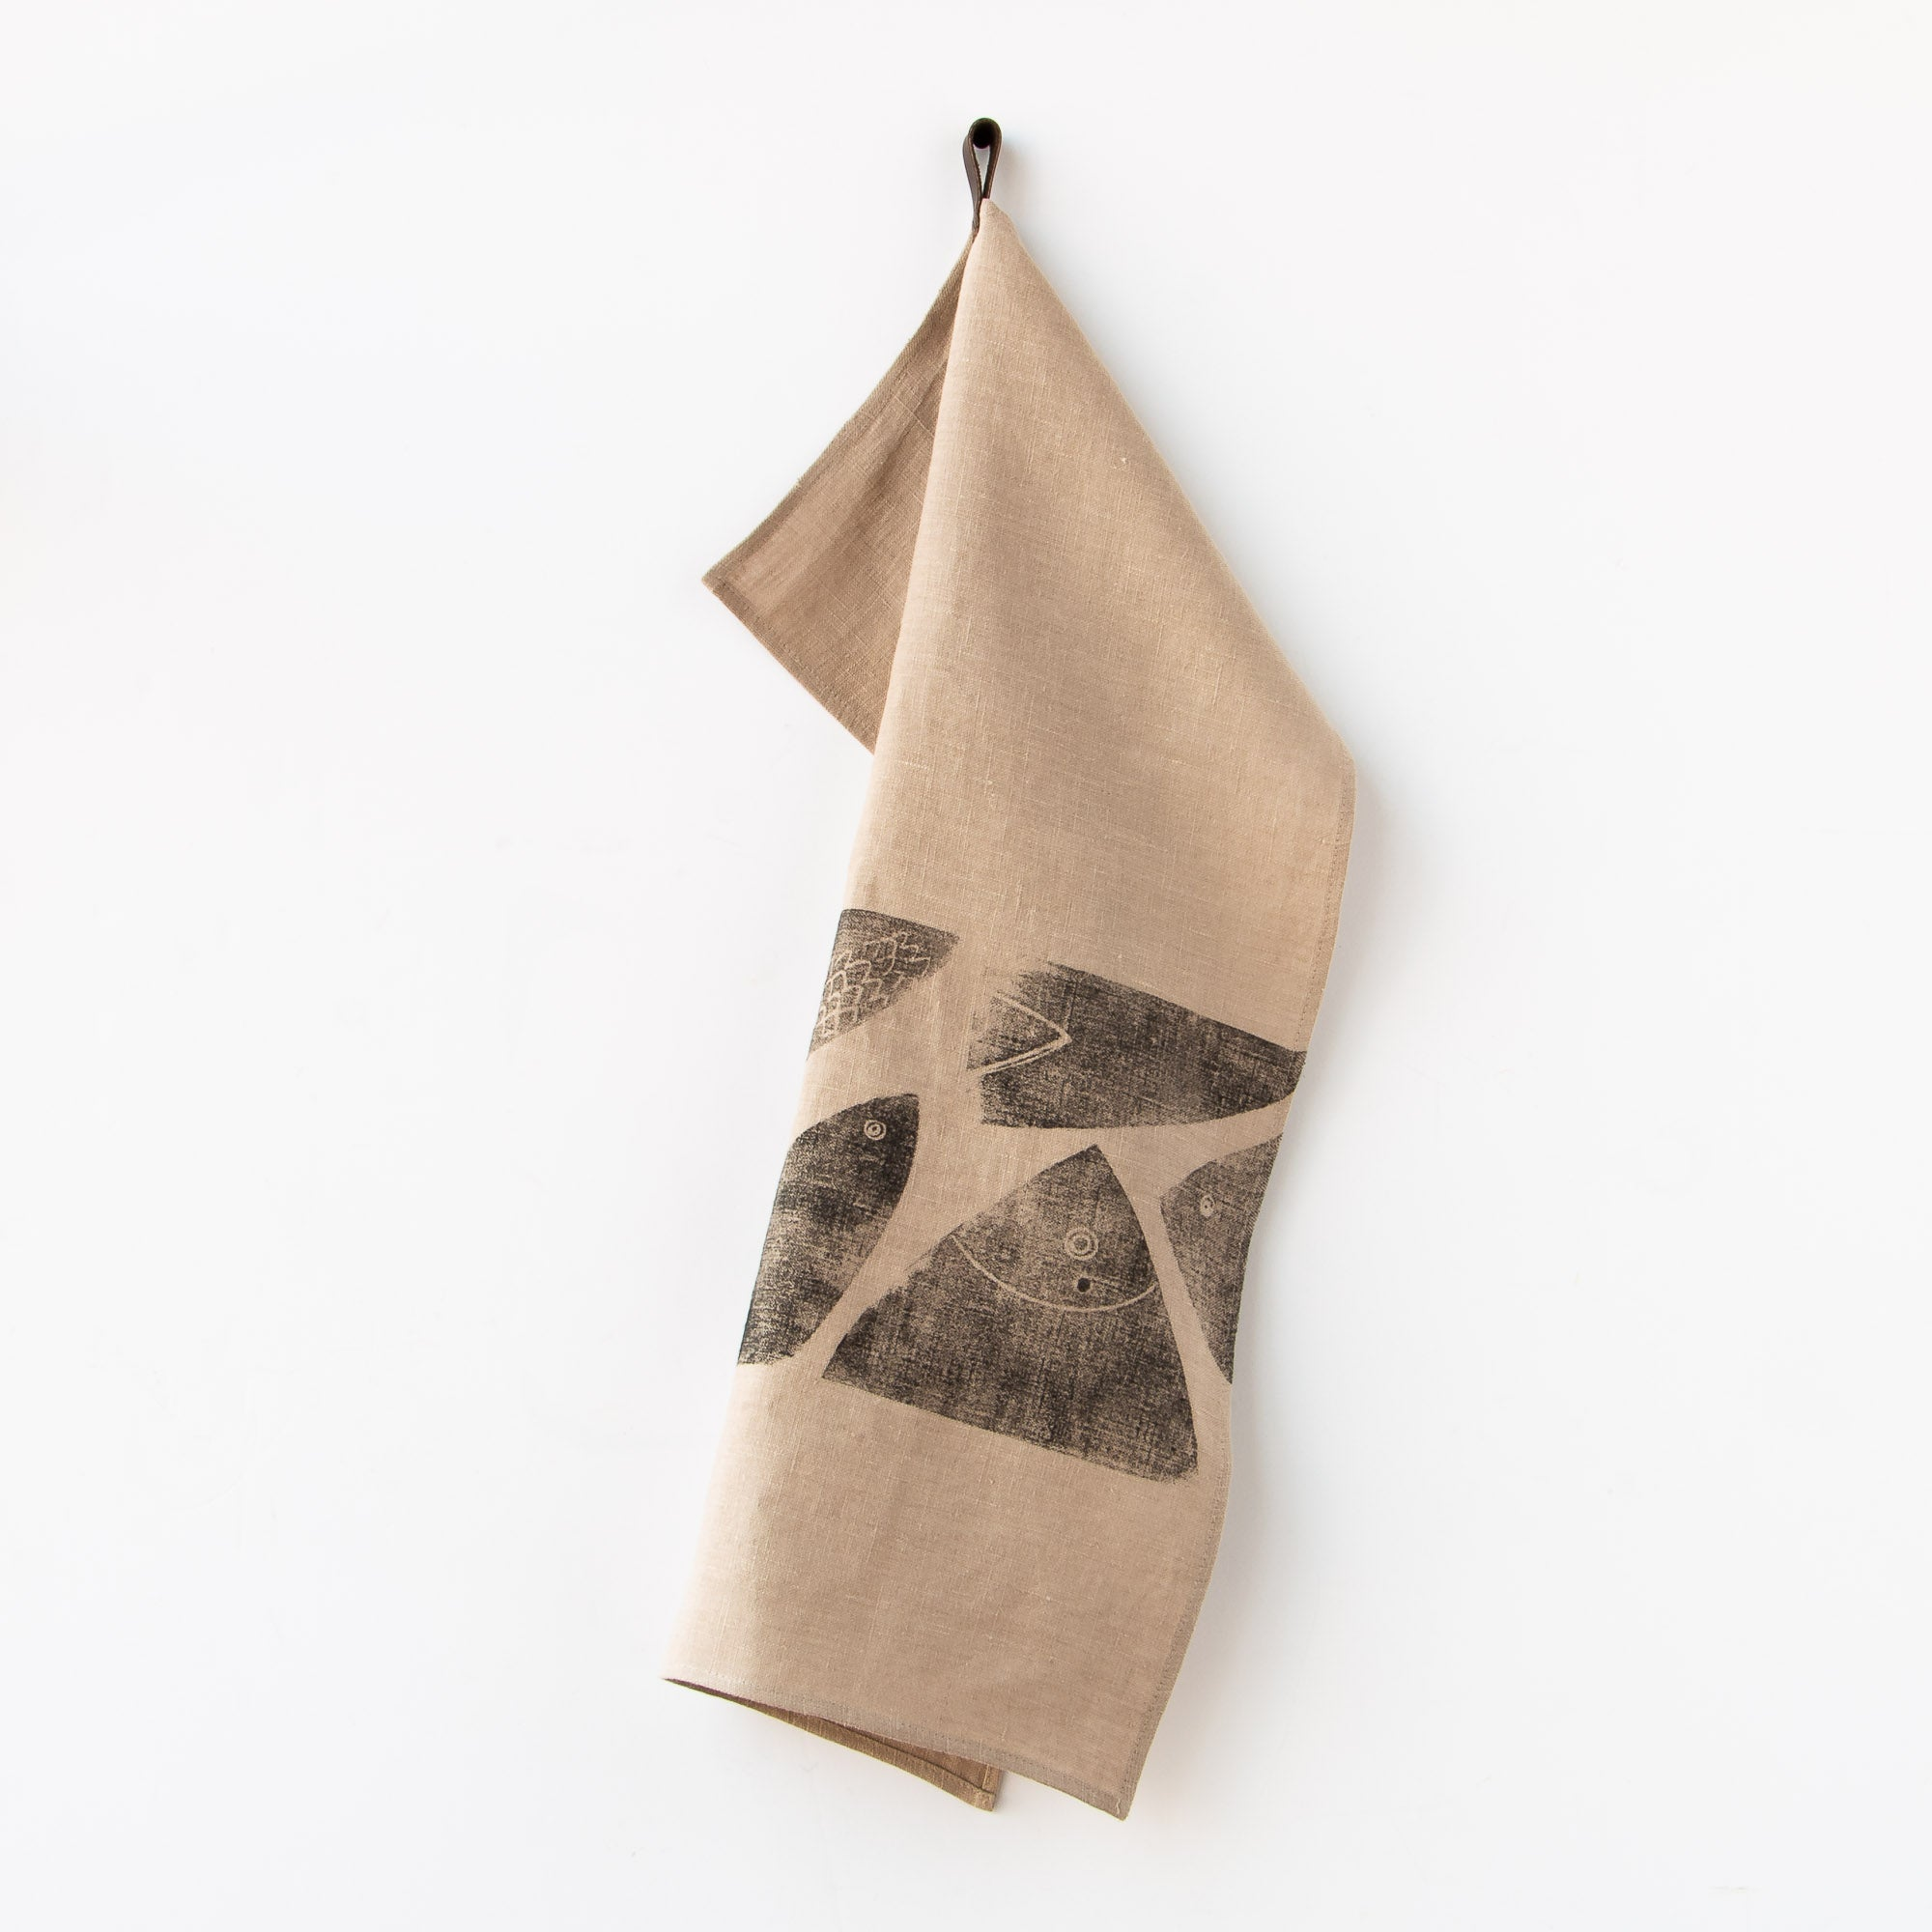 Five Times a Day - Handprinted 100% Linen Dish Cloth / Hand Towel - Sold by Chic & Basta